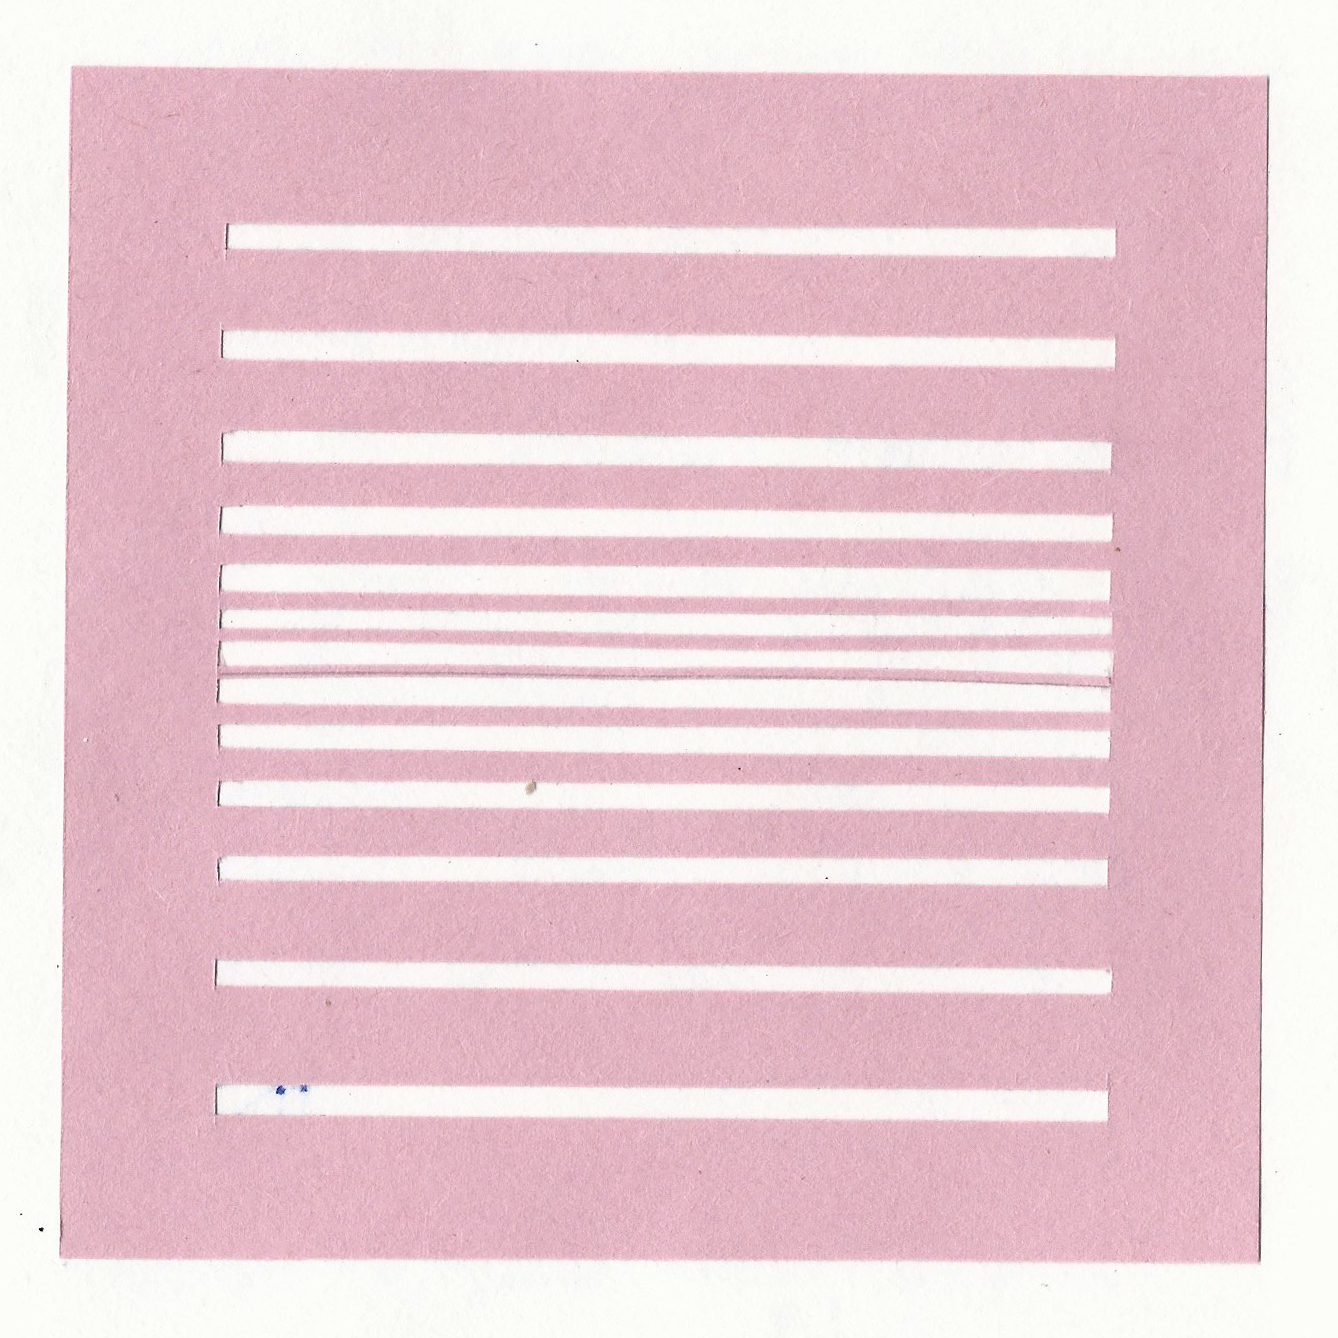 An experiment where slits are cut in a pink piece of paper. The slits get closer together nearer the center to create depth and a vanishing point. By Designer Nick Barry